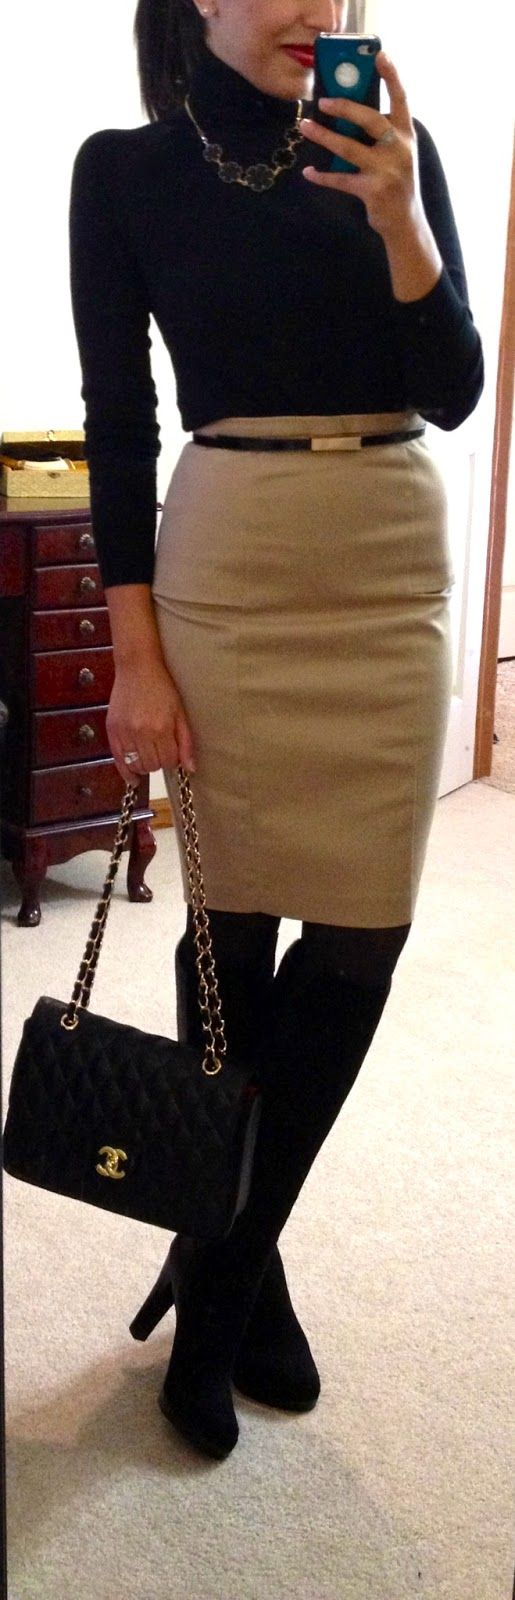 Zara turtle neck, Zara pencil skirt, tall boots via DSW, F21 necklace & belt, Chanel classic flap bag